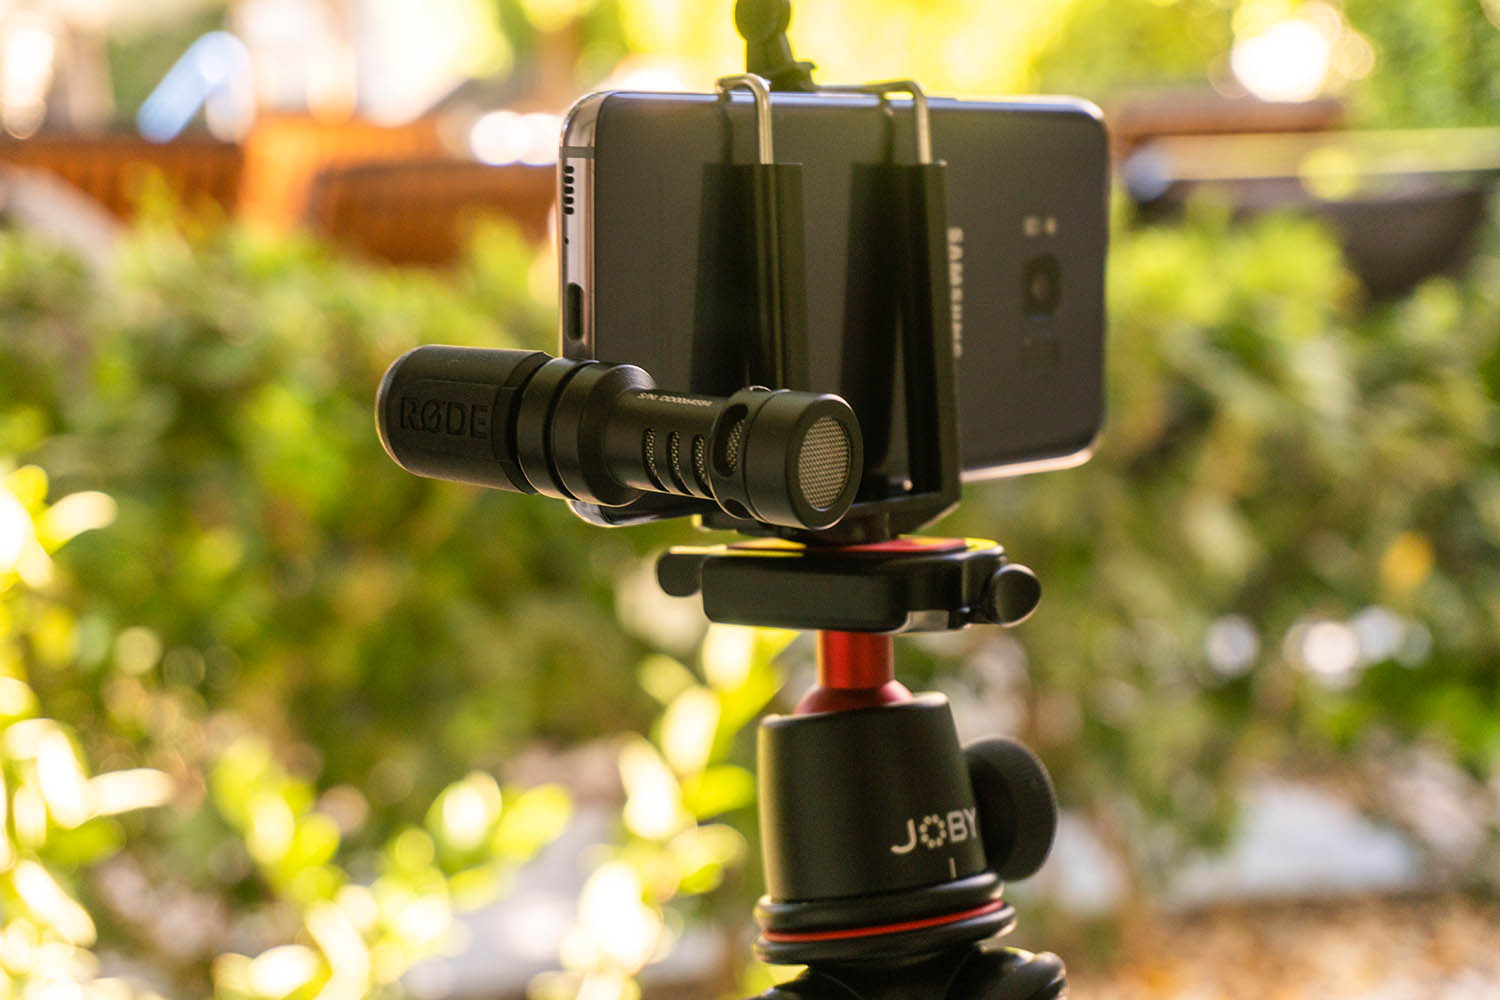 Rode mic on a smartphone - Equipment List for Making Better Videos With Your Smartphone